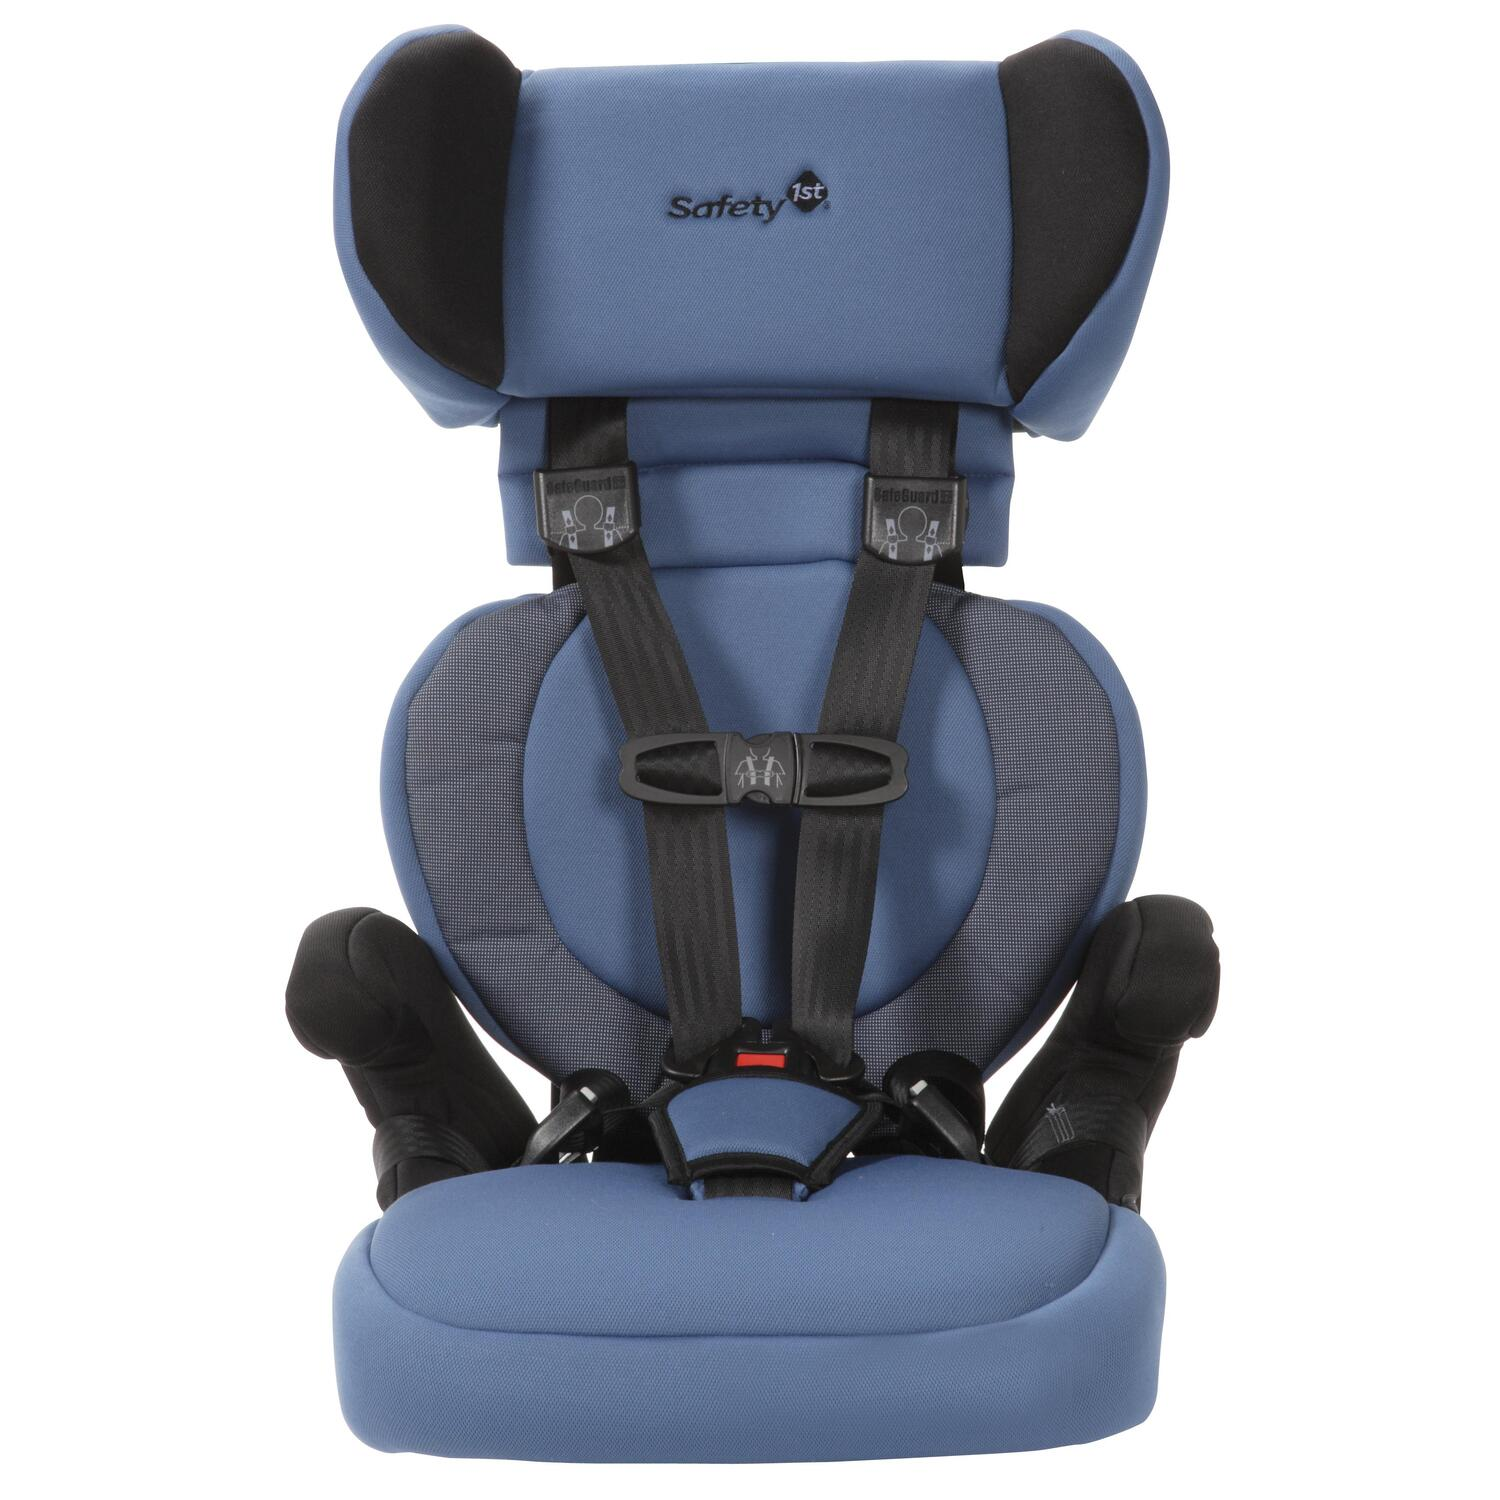 safety 1st safety 1st go hybrid booster car seat waterloo by oj commerce 22256ahd. Black Bedroom Furniture Sets. Home Design Ideas